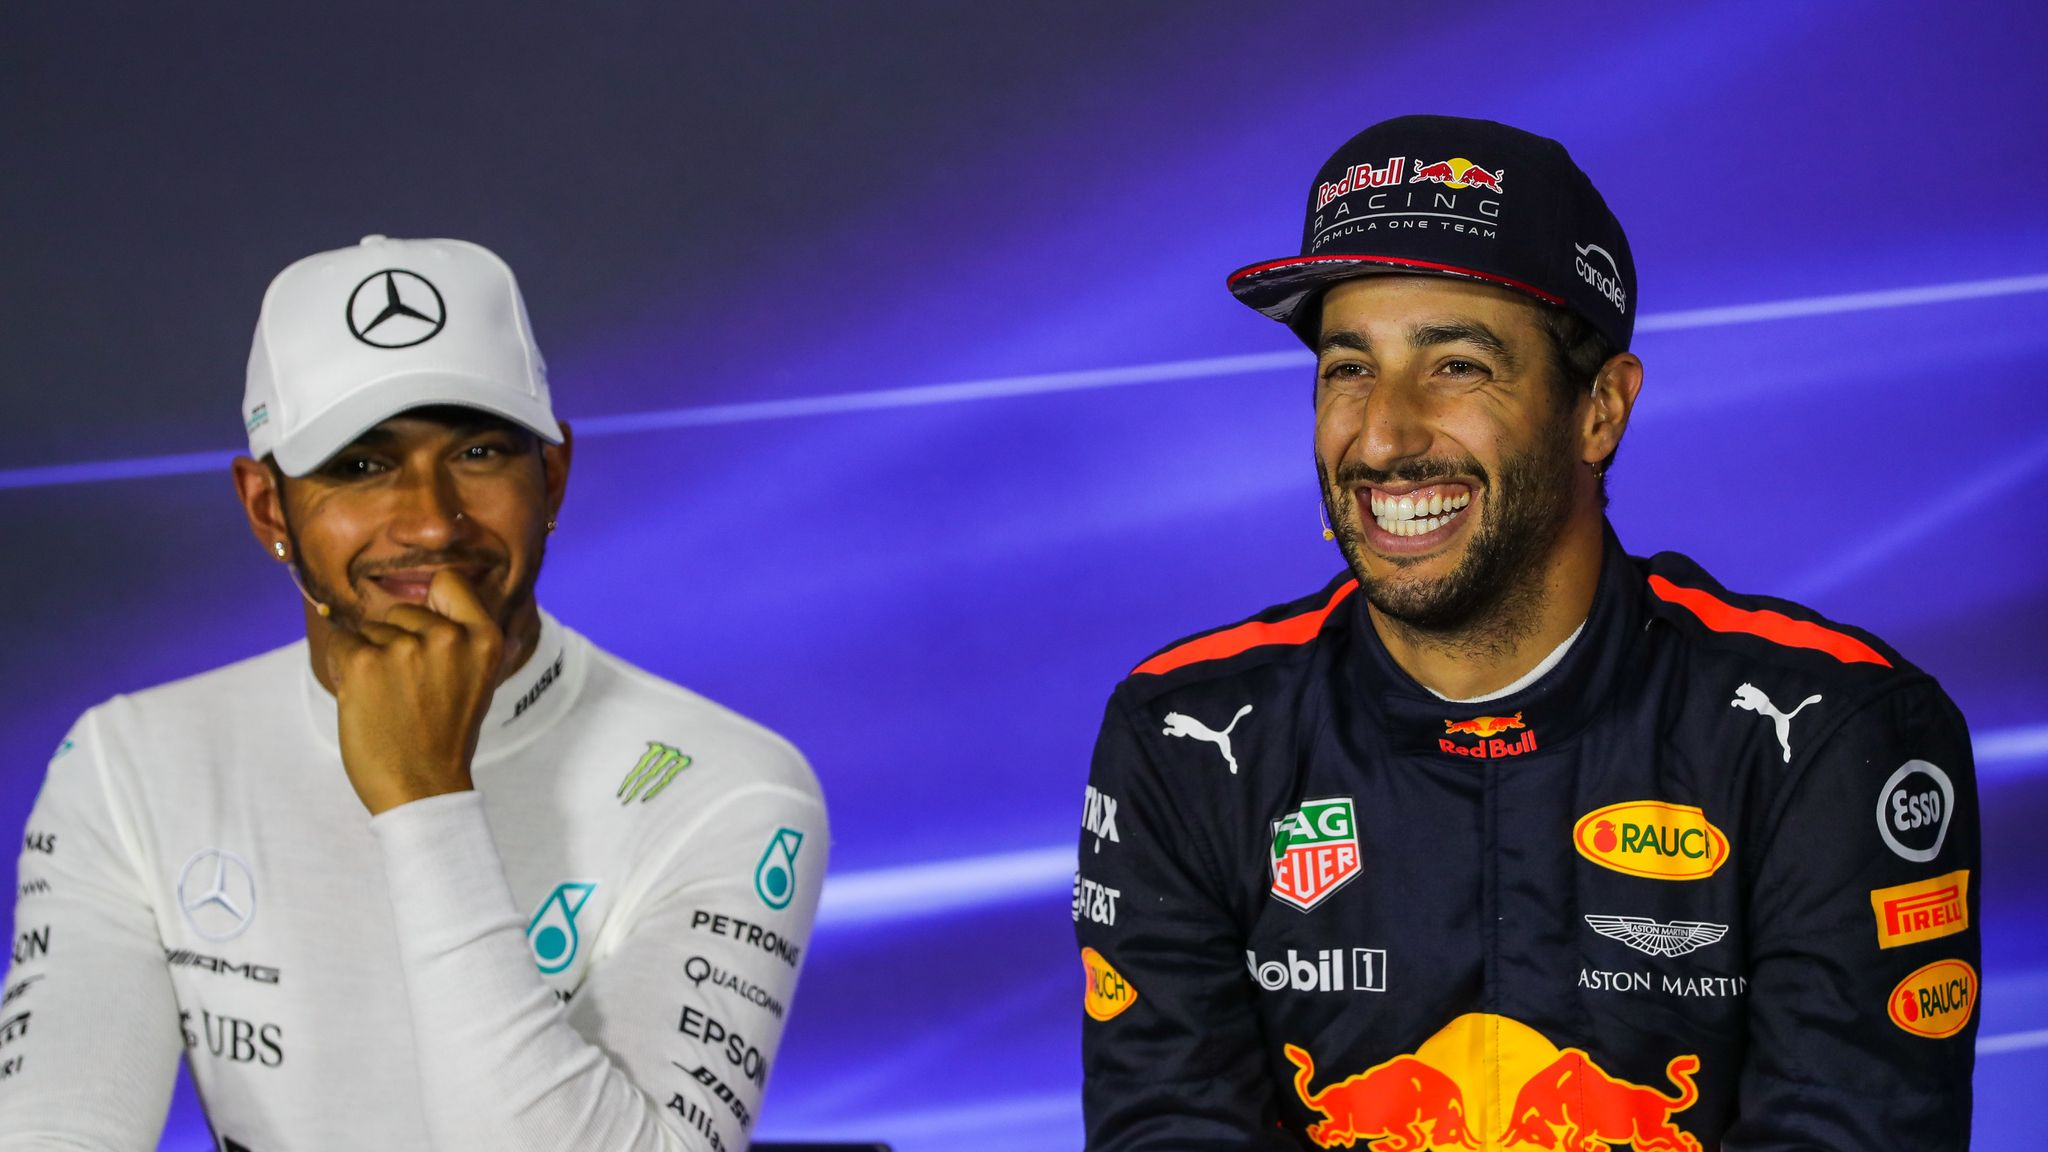 Formula 1 2018: Who are the most popular drivers on social